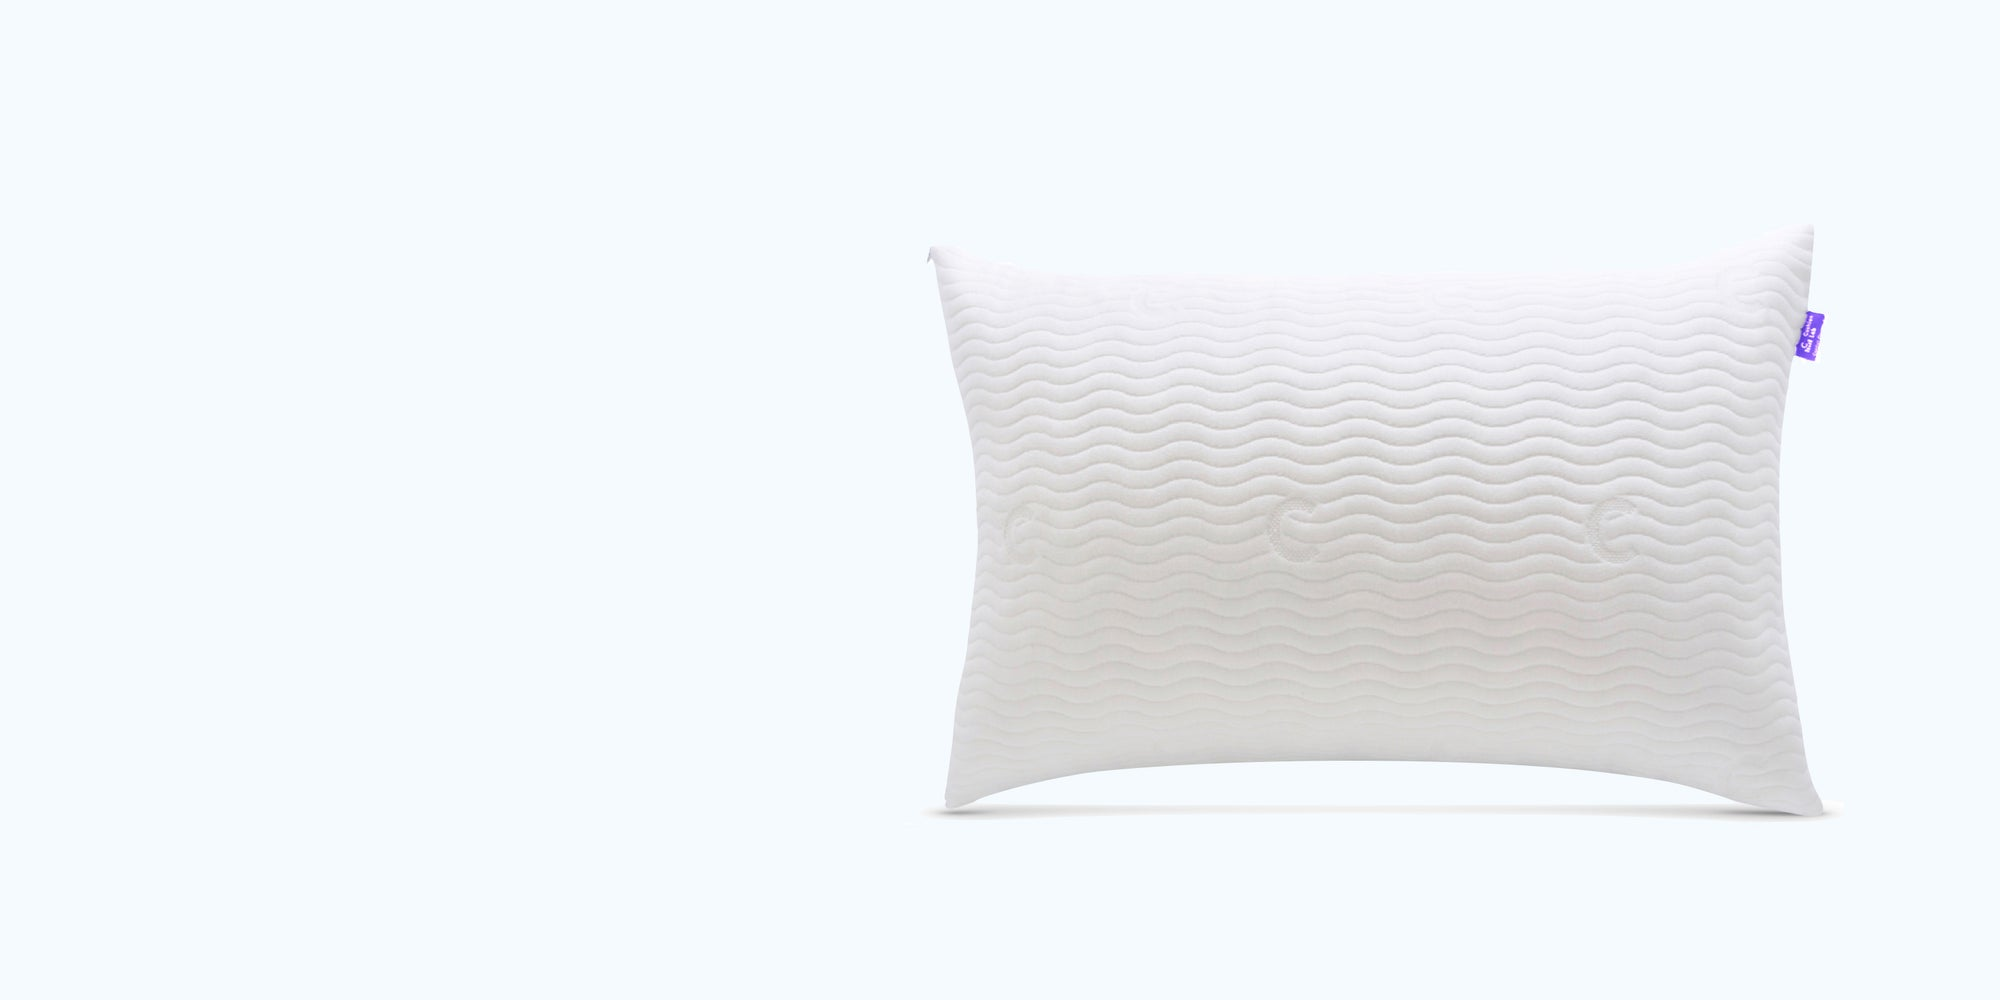 Cushion Lab Adjustable Shredded Memory Foam Pillow, Hypoallergenic Bamboo Pillow